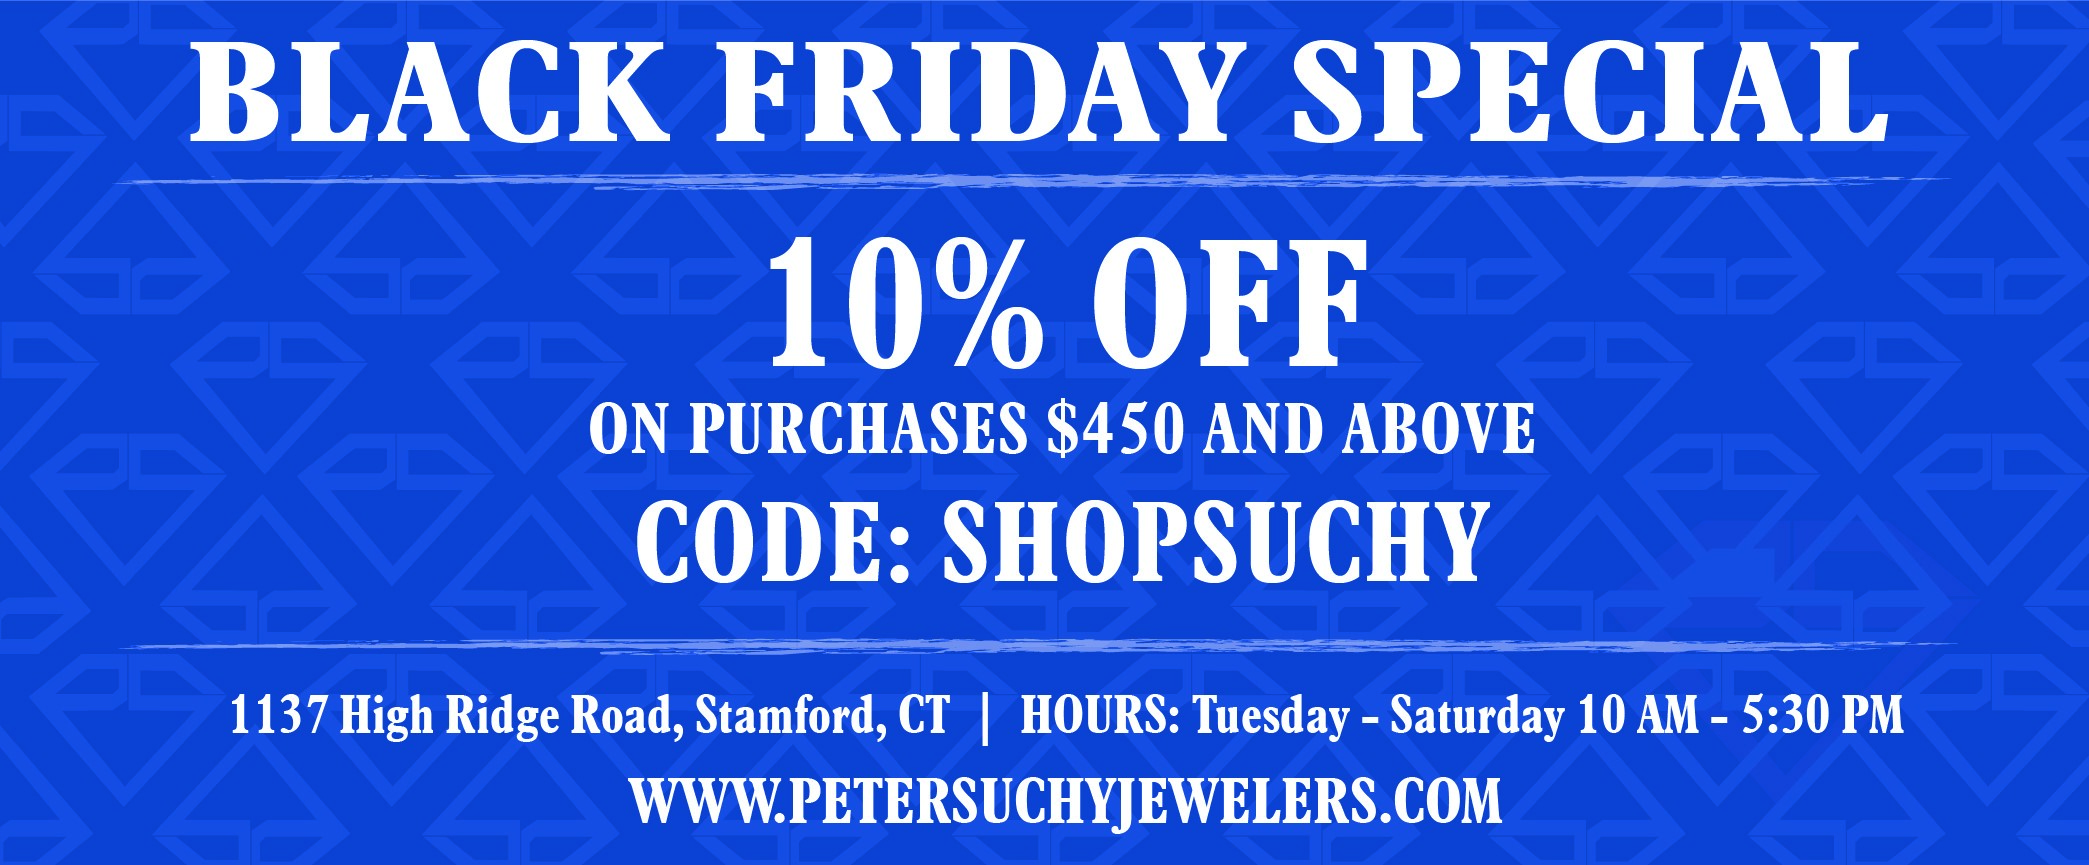 Peter Suchy Jewelers Holiday Promotion 2018